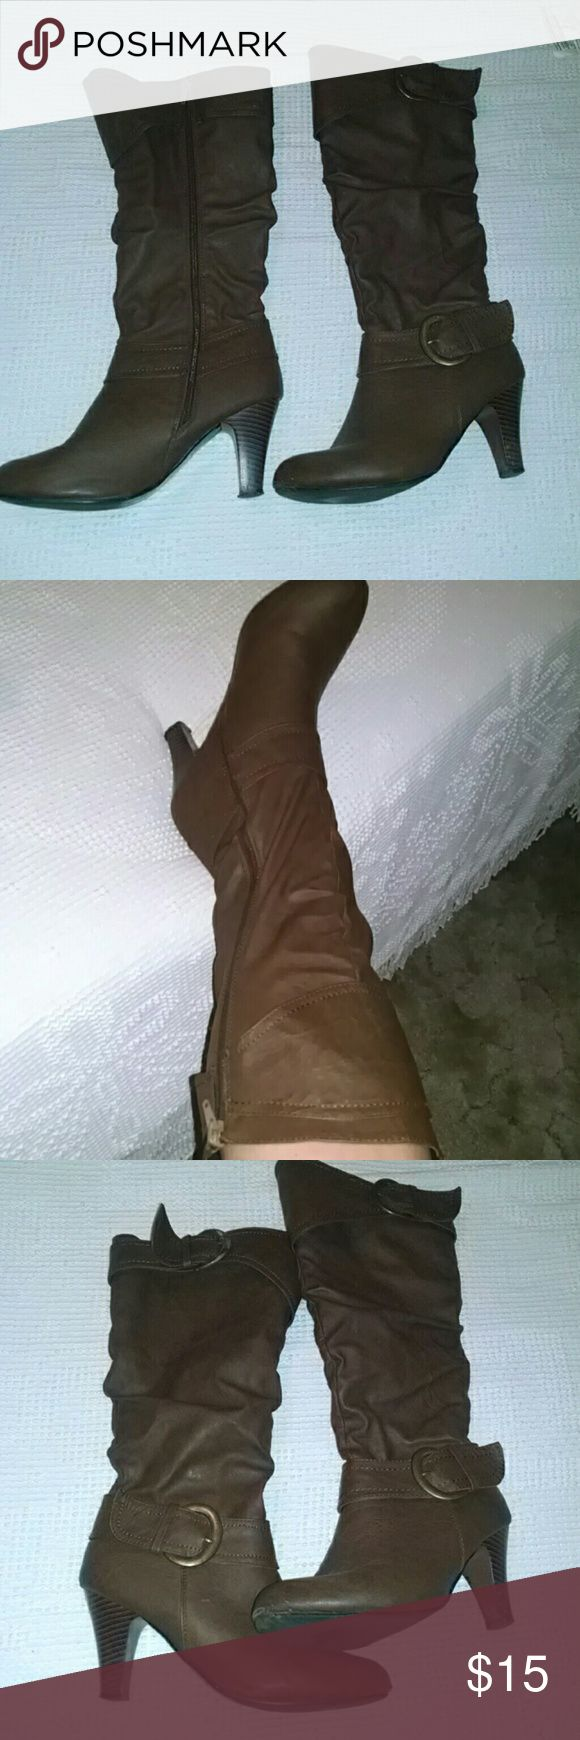 Classic brown heeled boots 😍😍 These are amazing!!! They fit wonderfully, the only reason I'm getting rid of these is because I have two pair!!! They are a size 8/9 Shoes